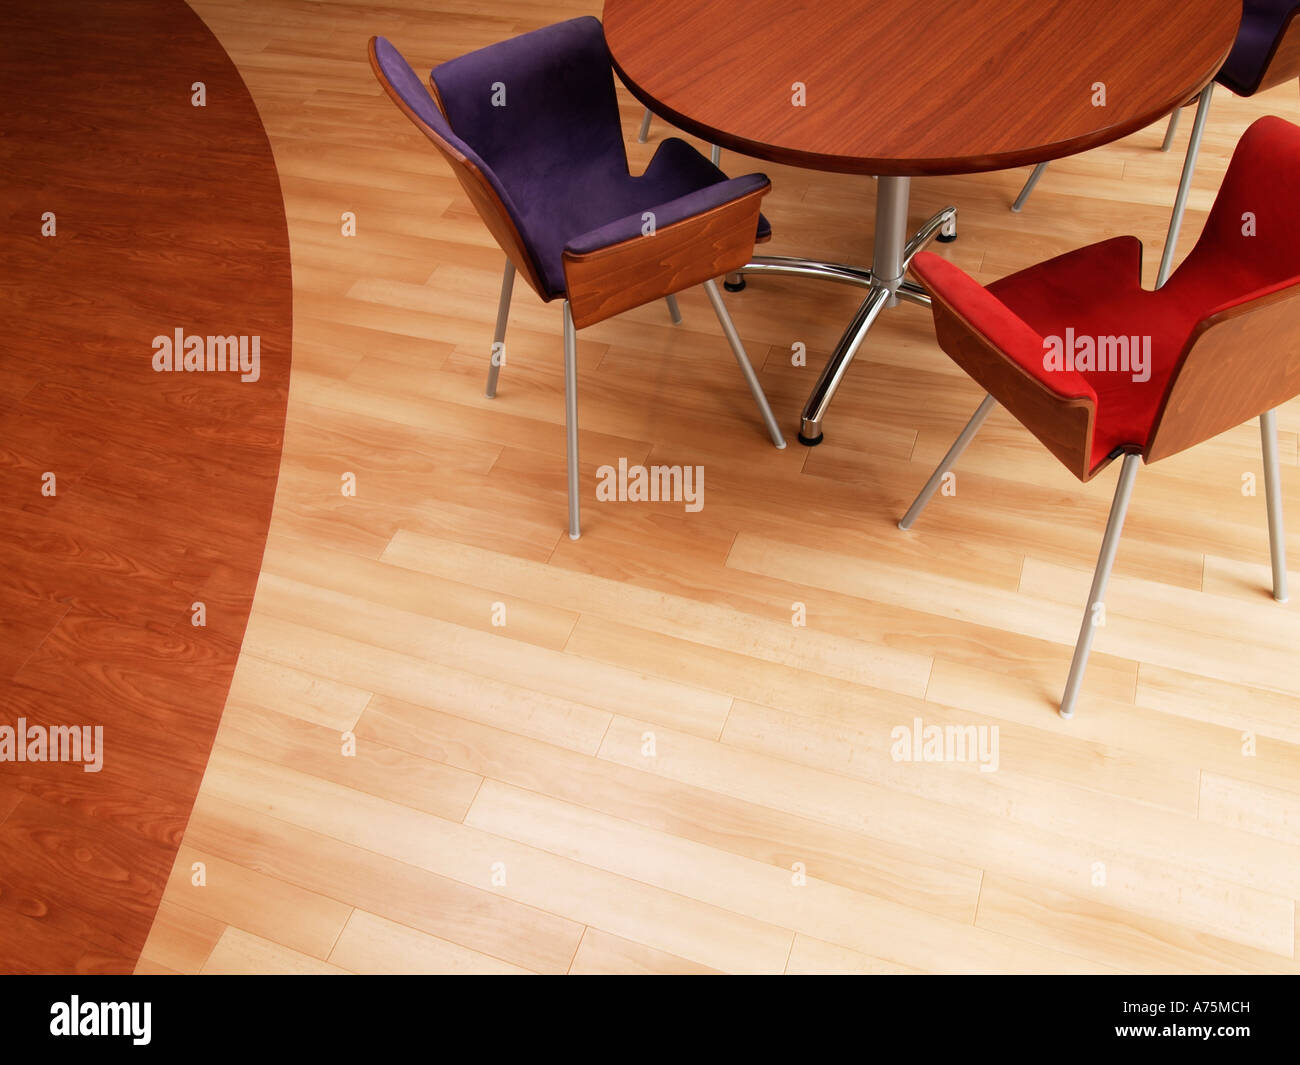 different types of wood furniture. Birds Eye View Of Round Wooden Table With Modern Design Chairs On Parquet Floor Made Two Kinds Wood Different Types Furniture